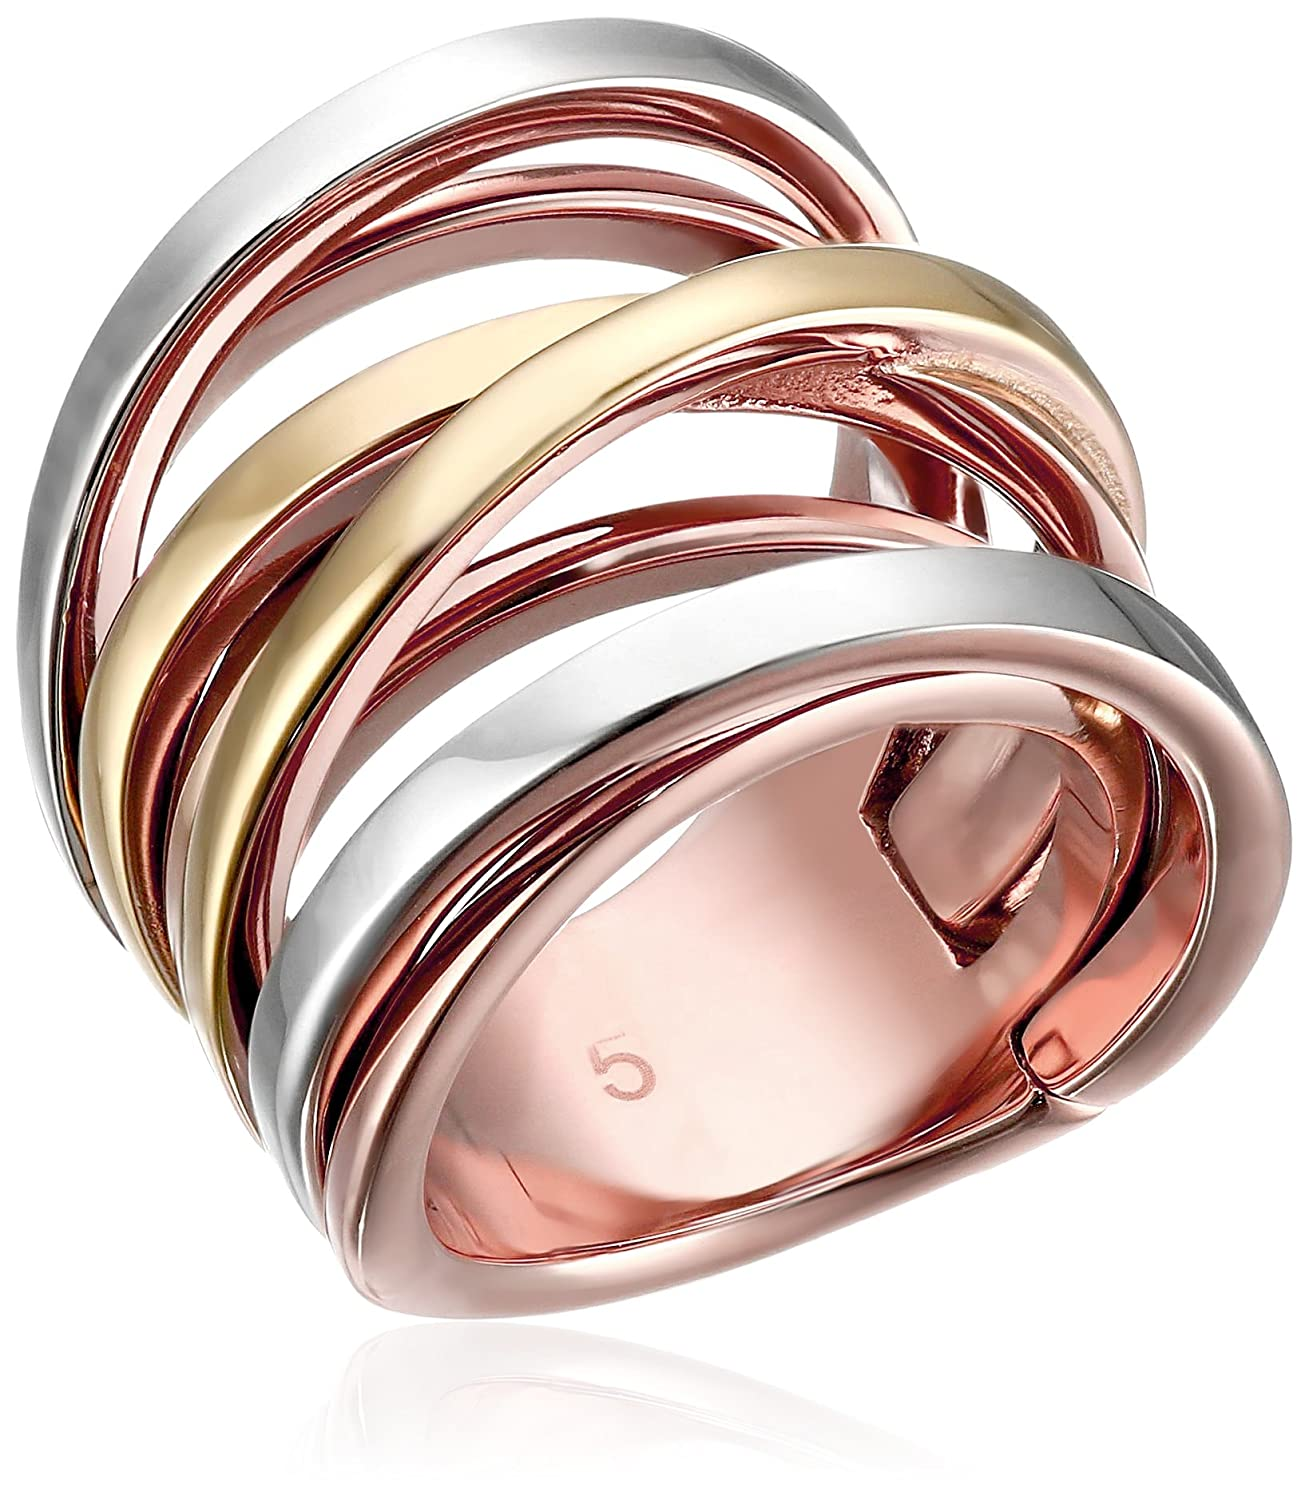 ring pave kors gallery rings product open goldclear tri normal jewelry rose bar in lyst michael stack pink